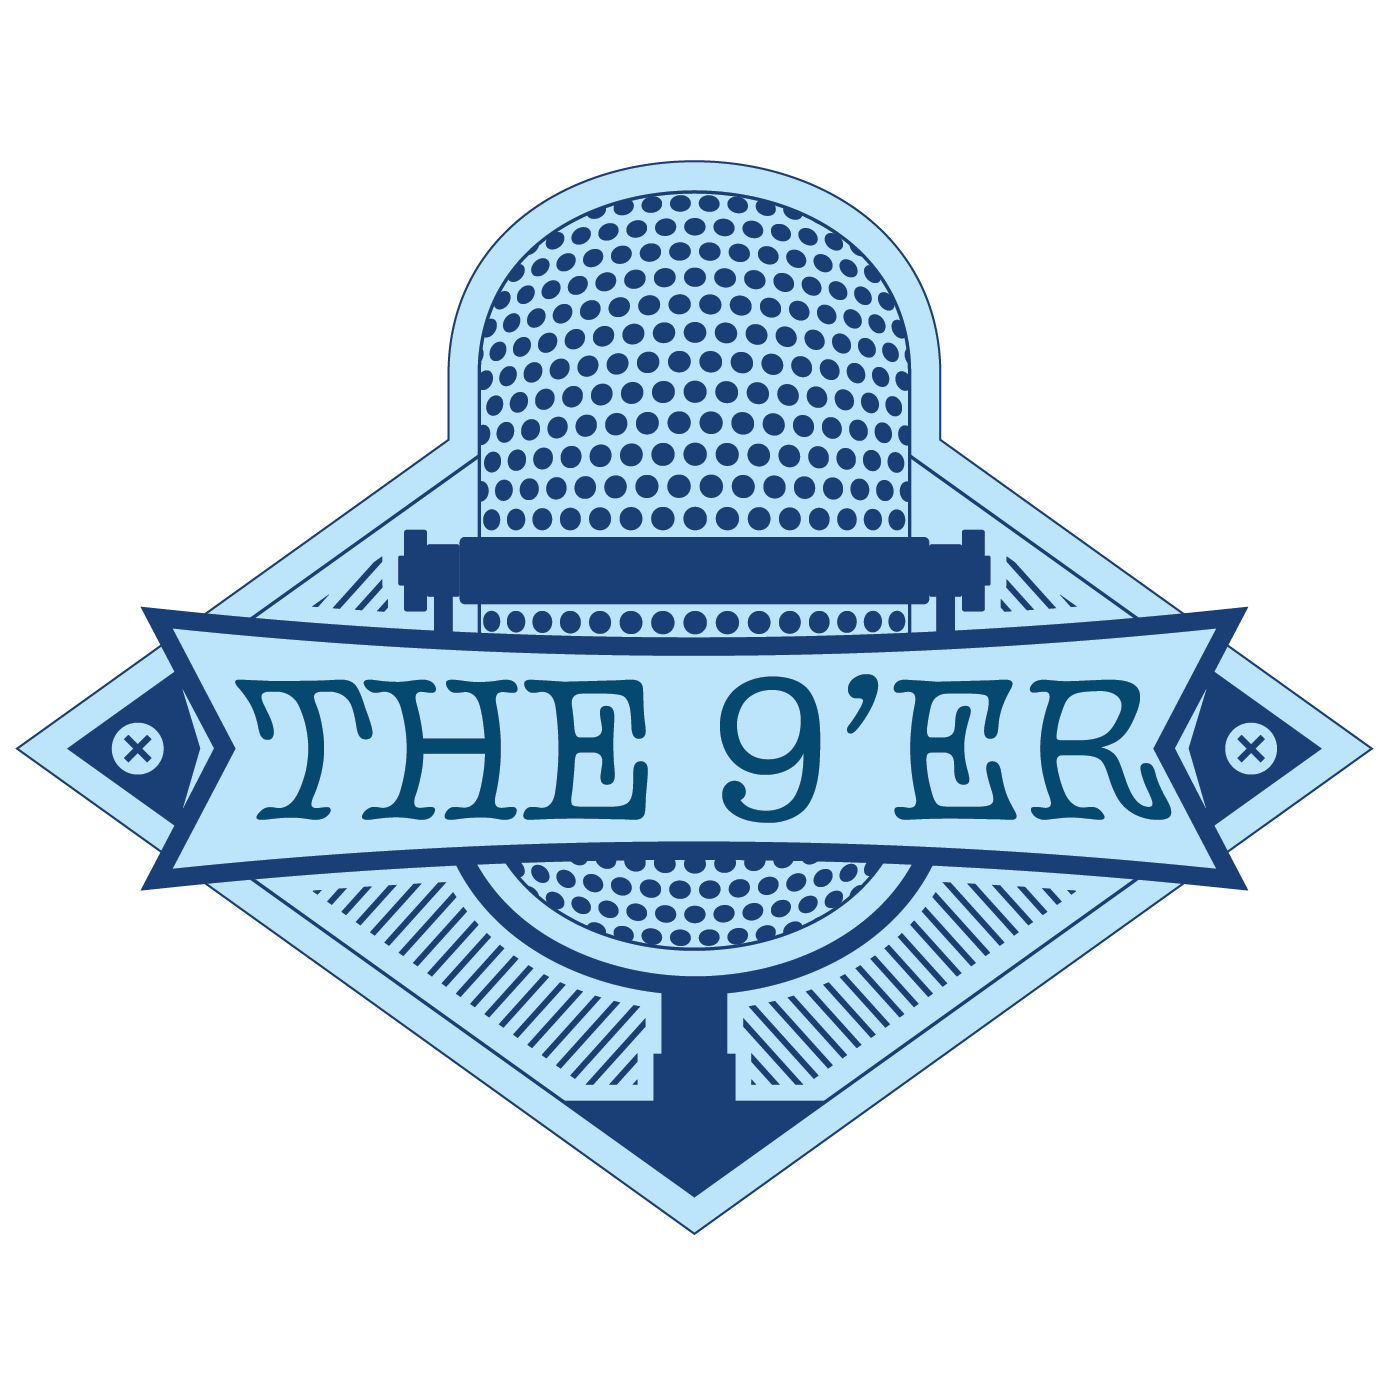 The 9er Podcast logo